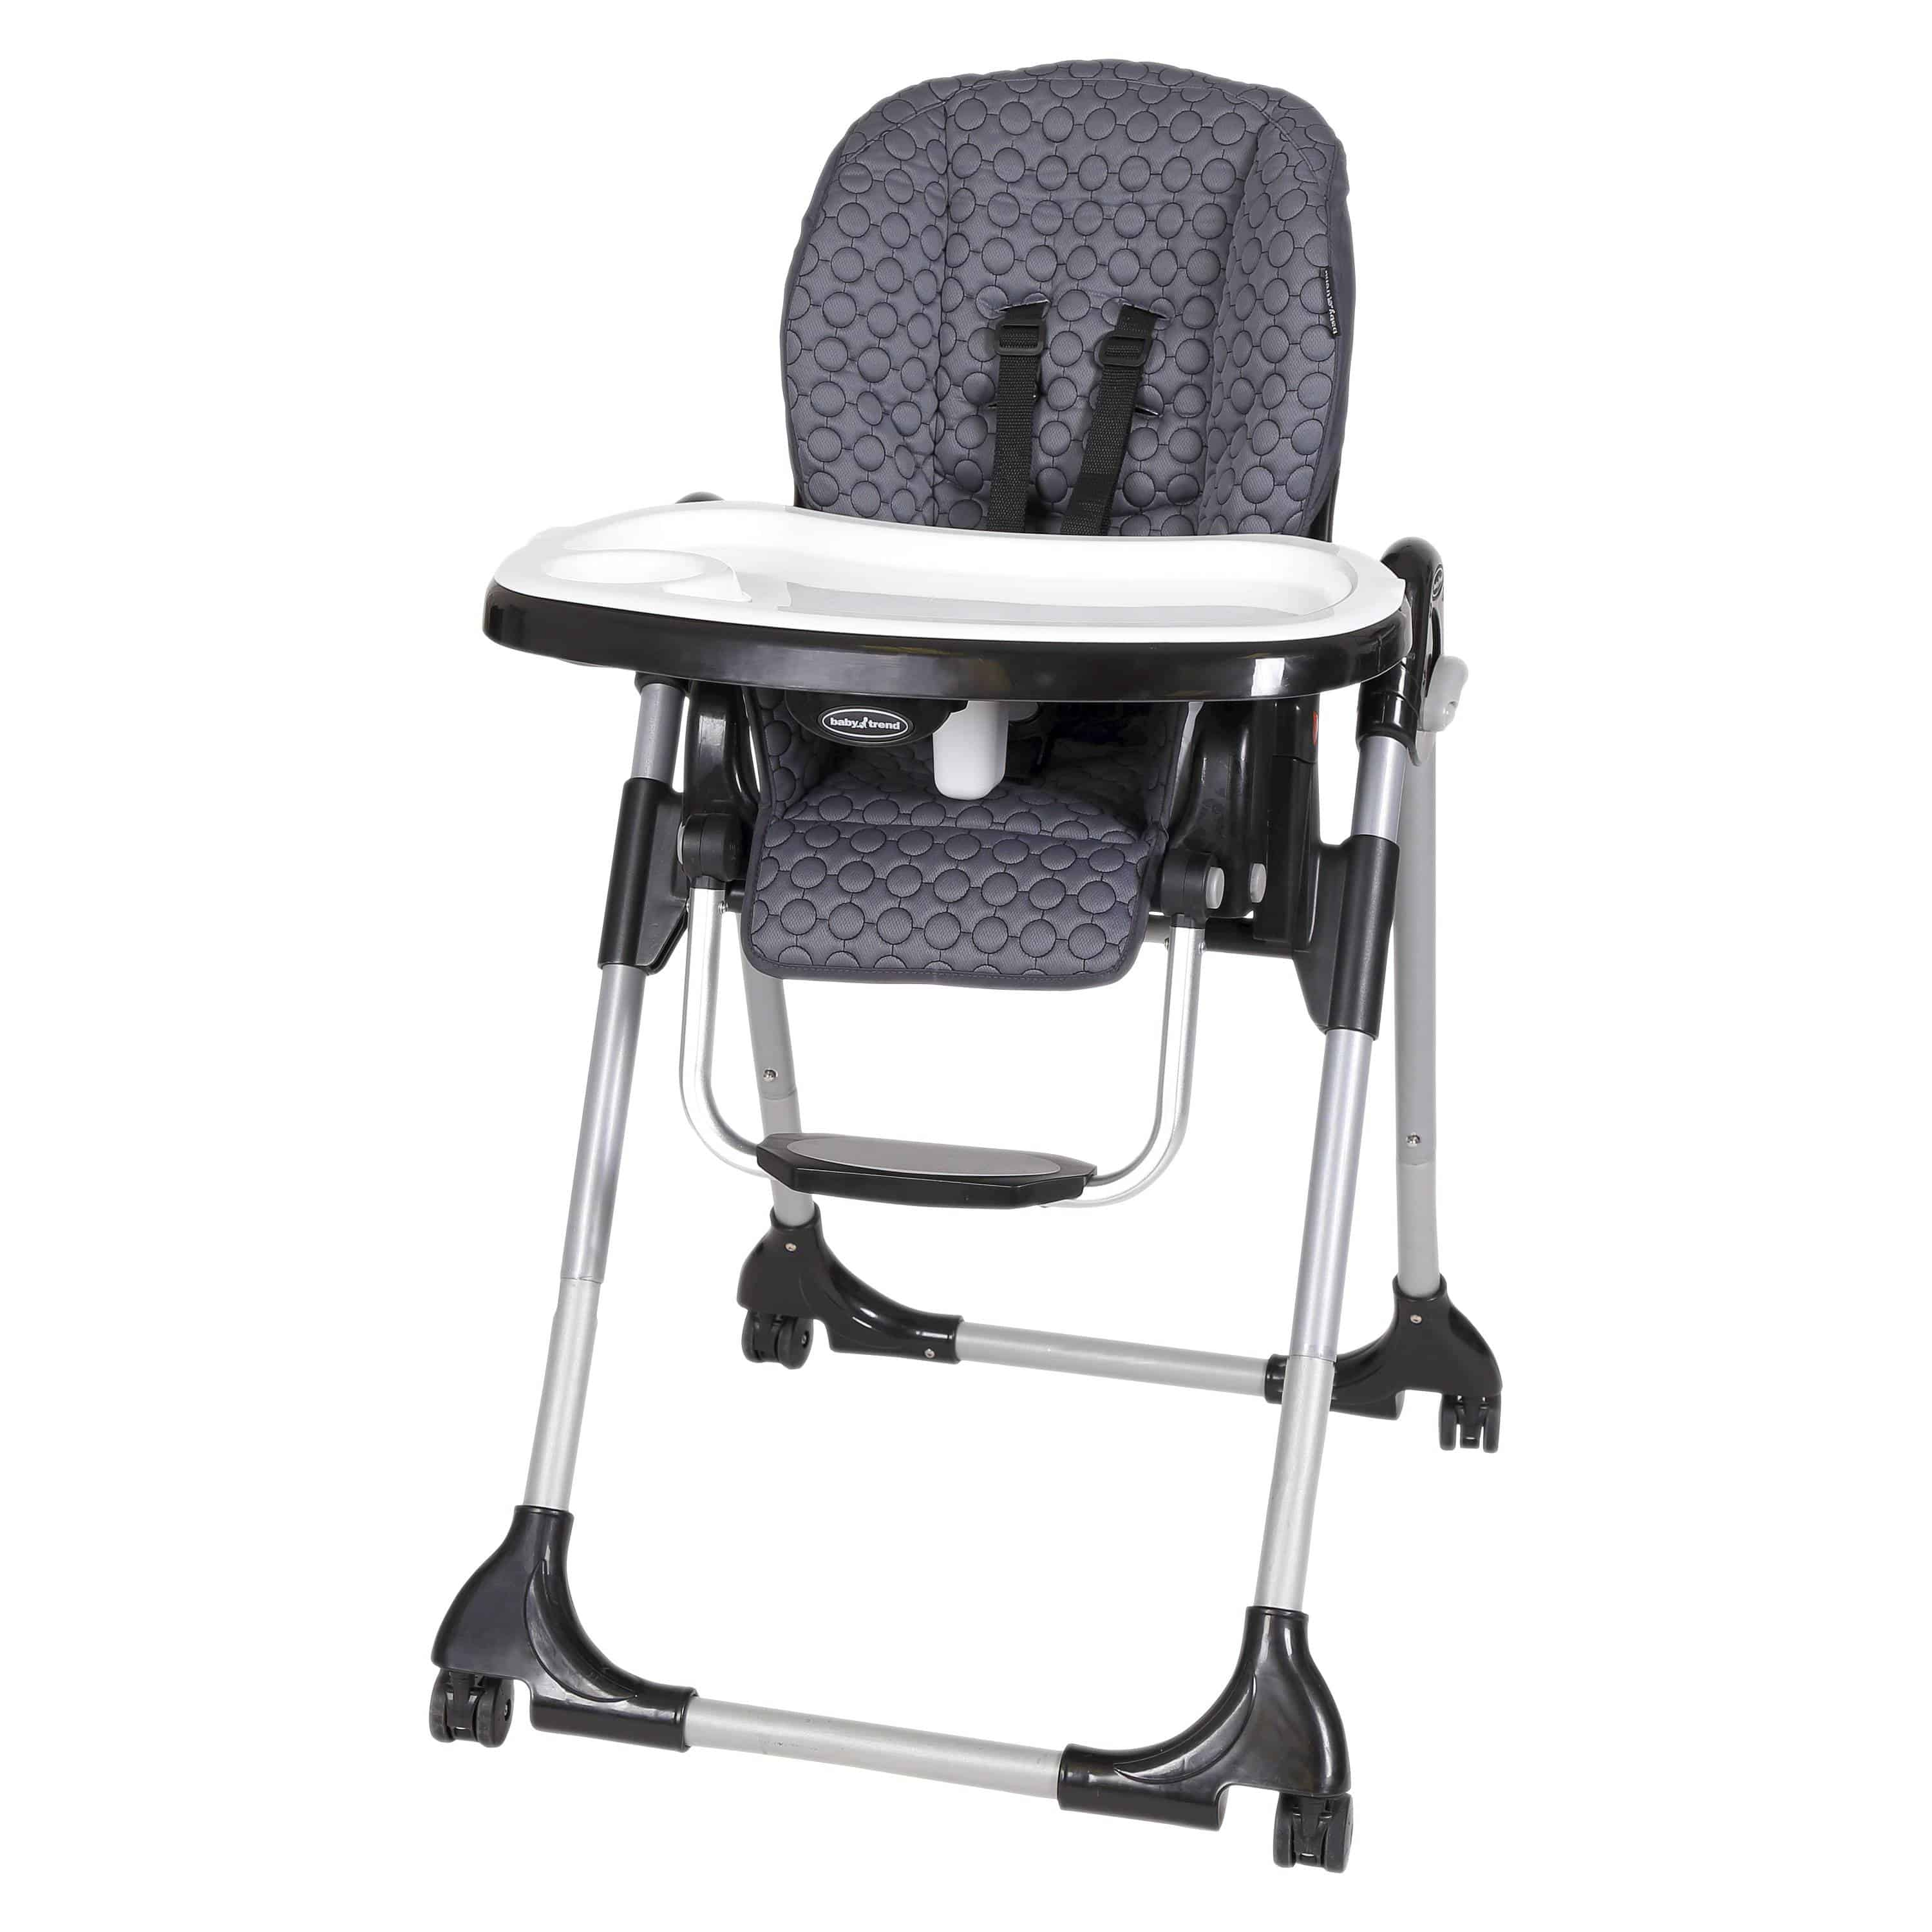 High Chair brand review: Baby Trend